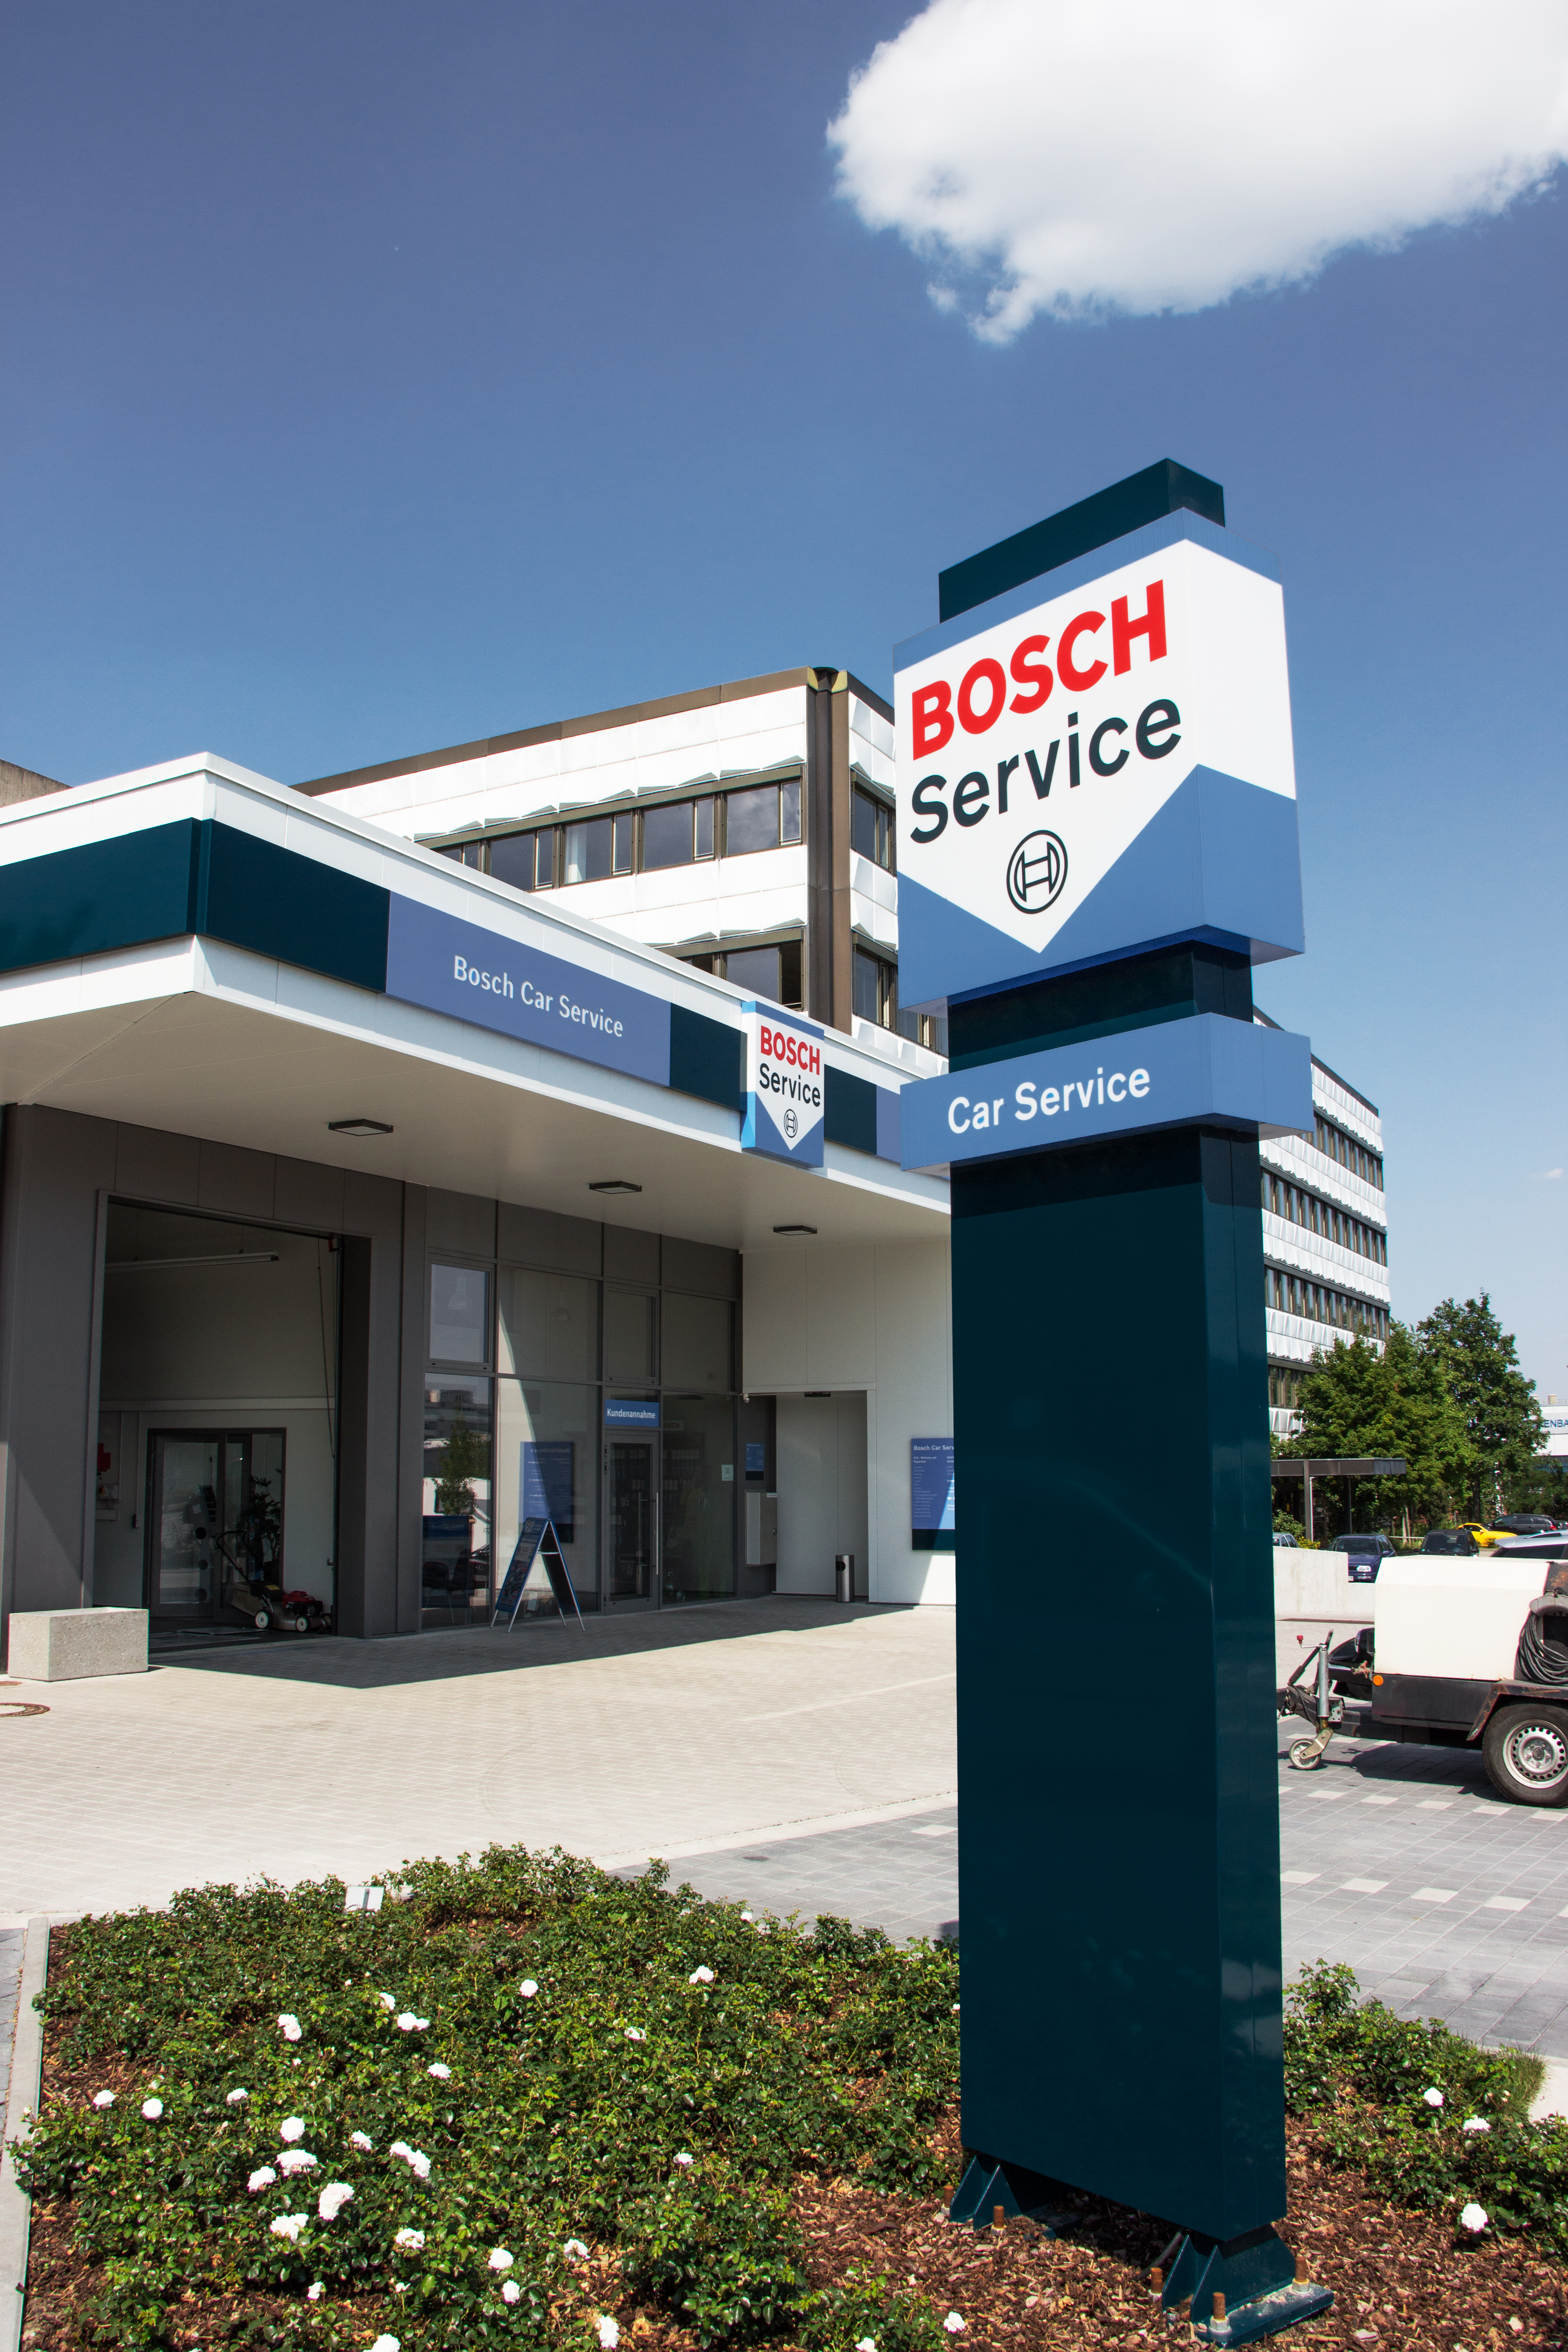 Bosch Car Service is now the world's largest brand-independent workshop network, with more than 15,000 companies in 150 countries.